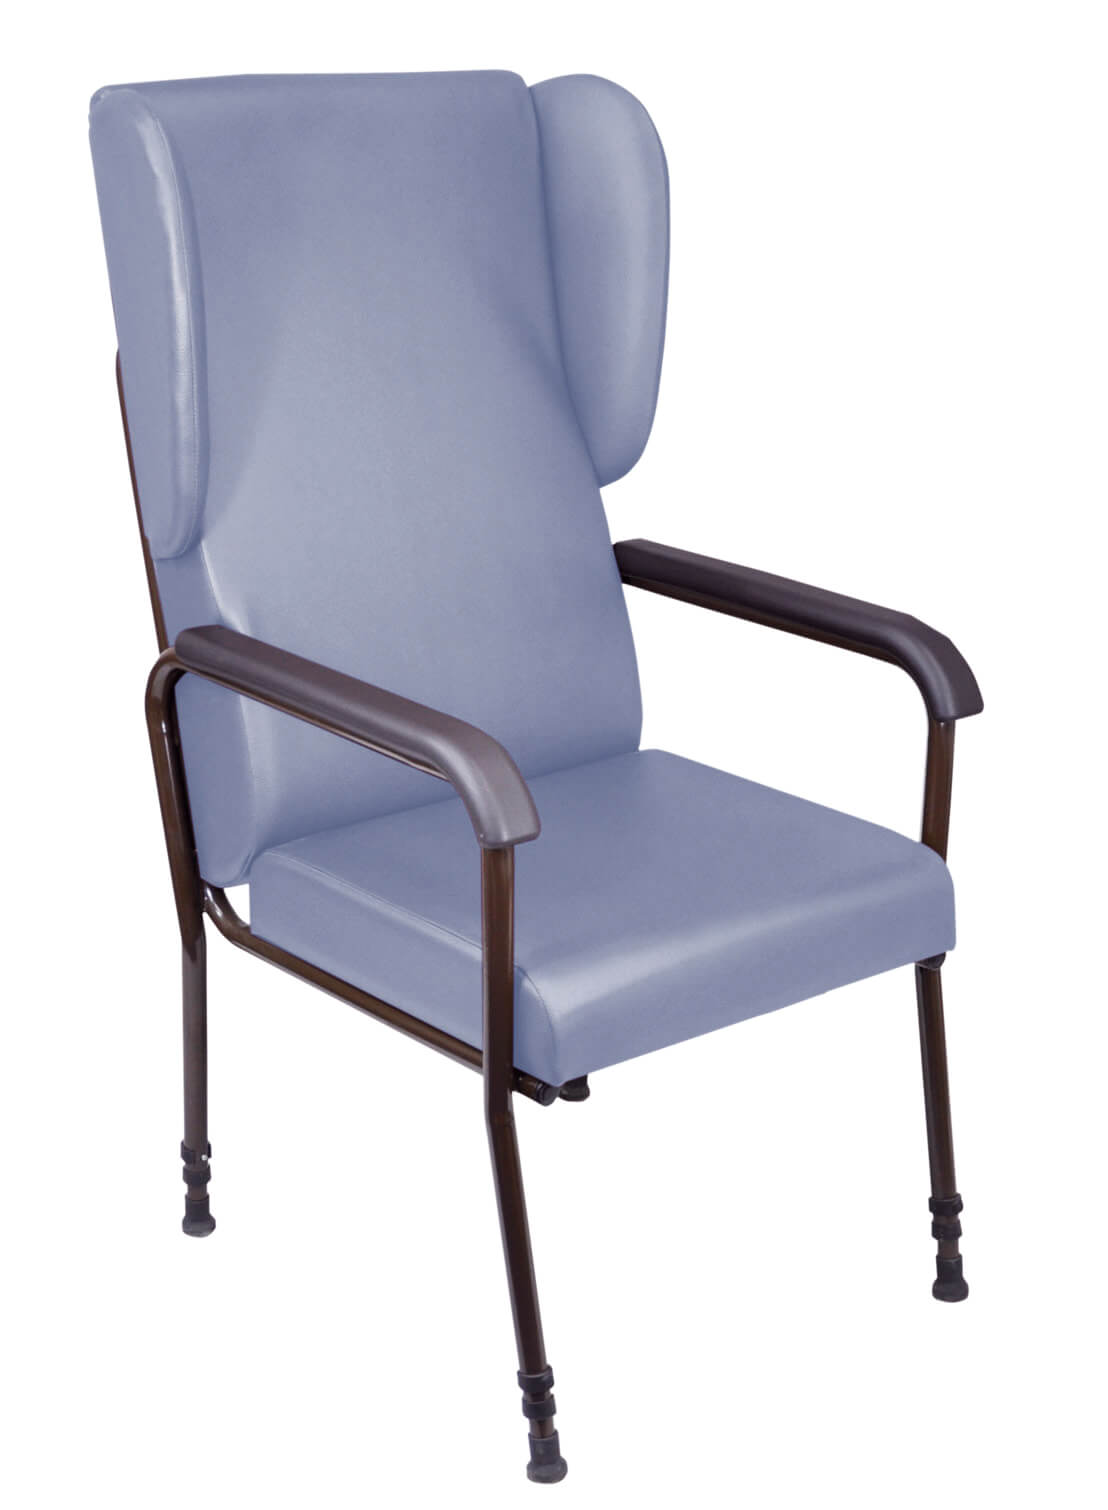 Blue Adjustable Chair